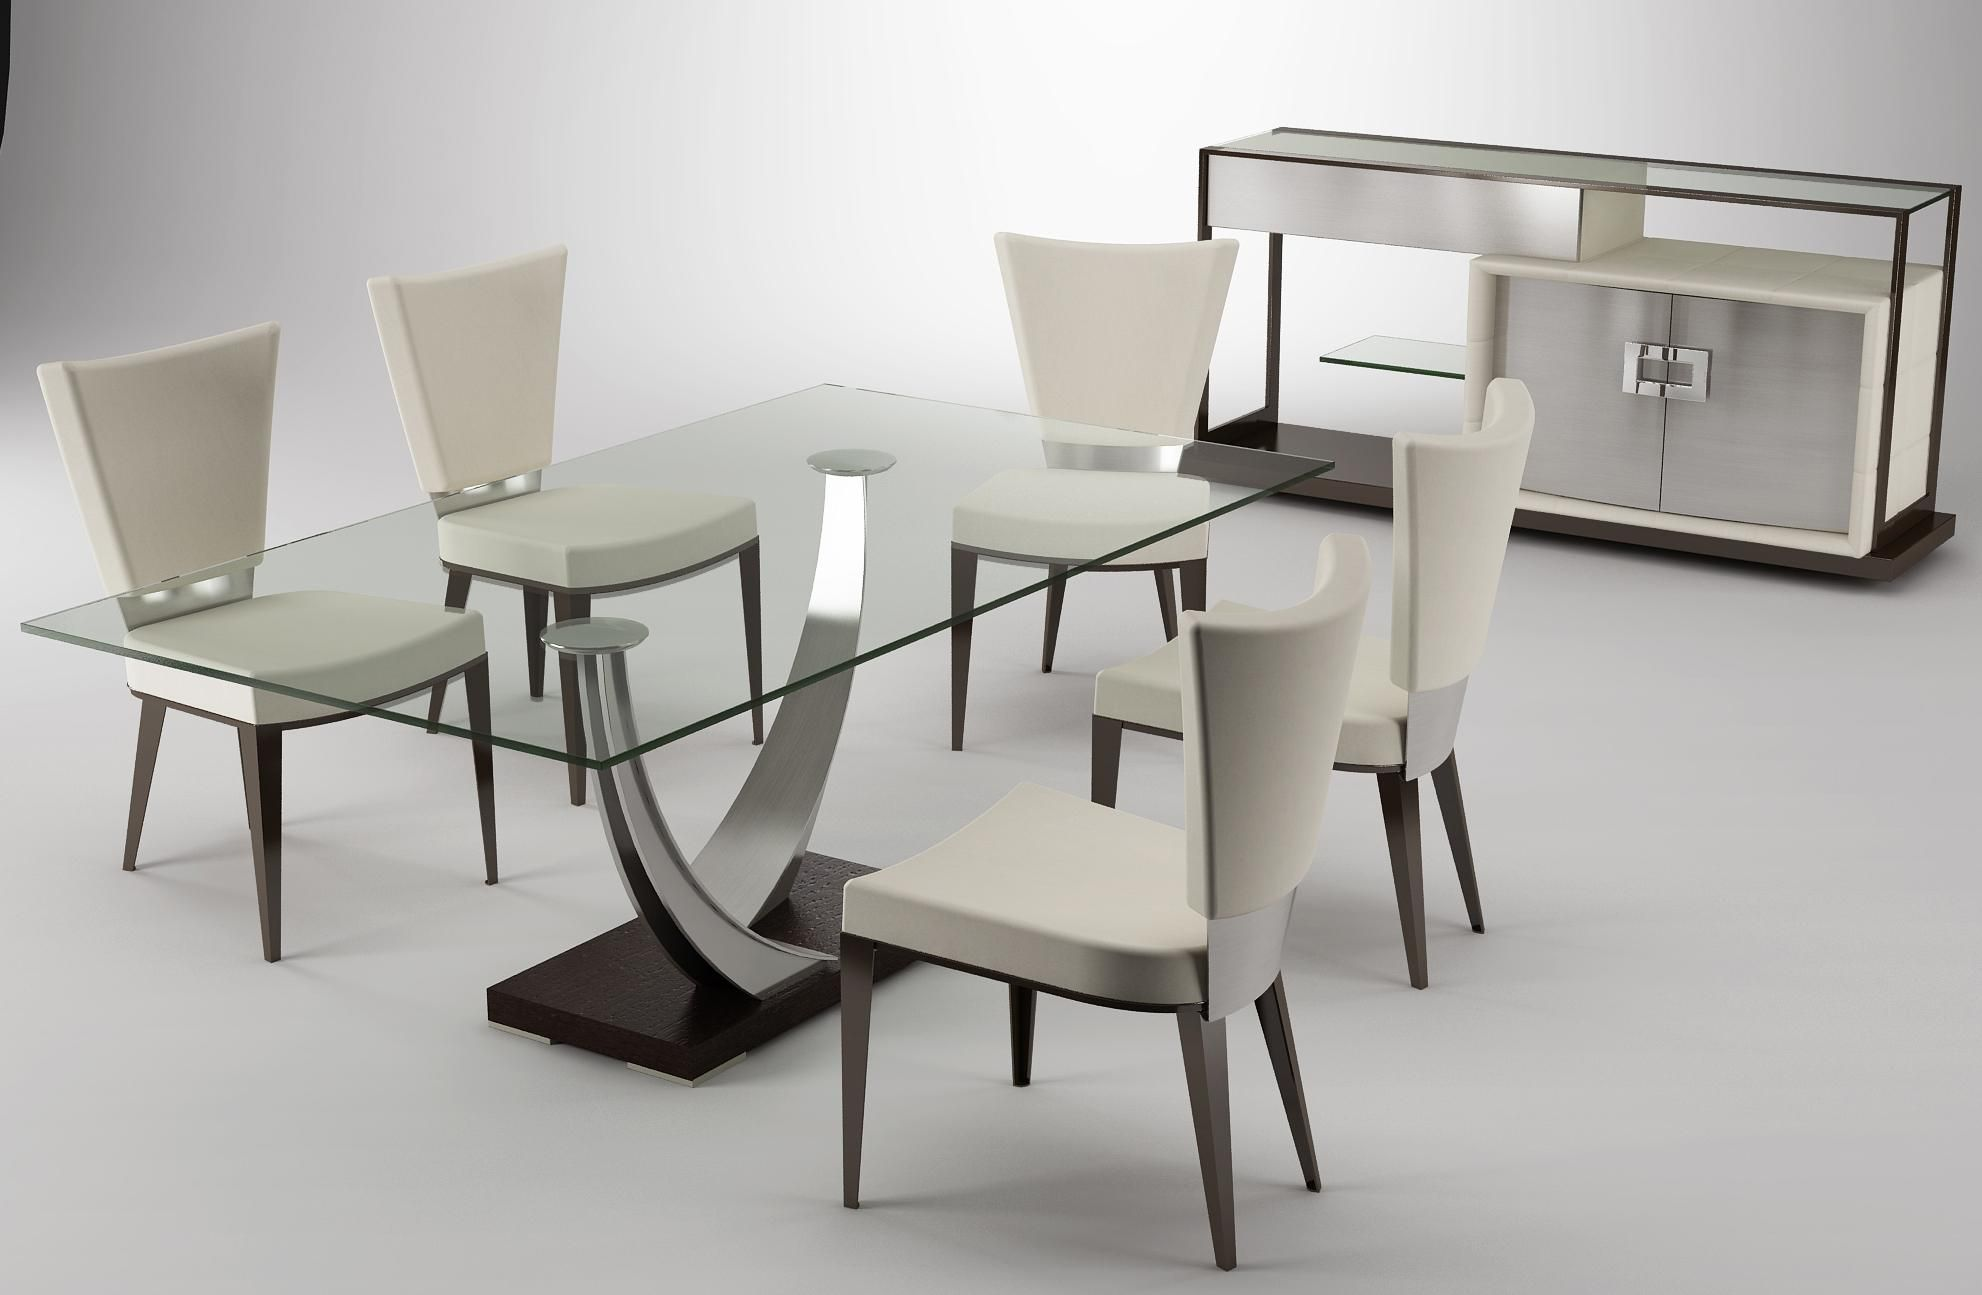 Amazing modern stylish dining room table set designs elite tangent glass top furniture stores - Houston dining room furniture ideas ...